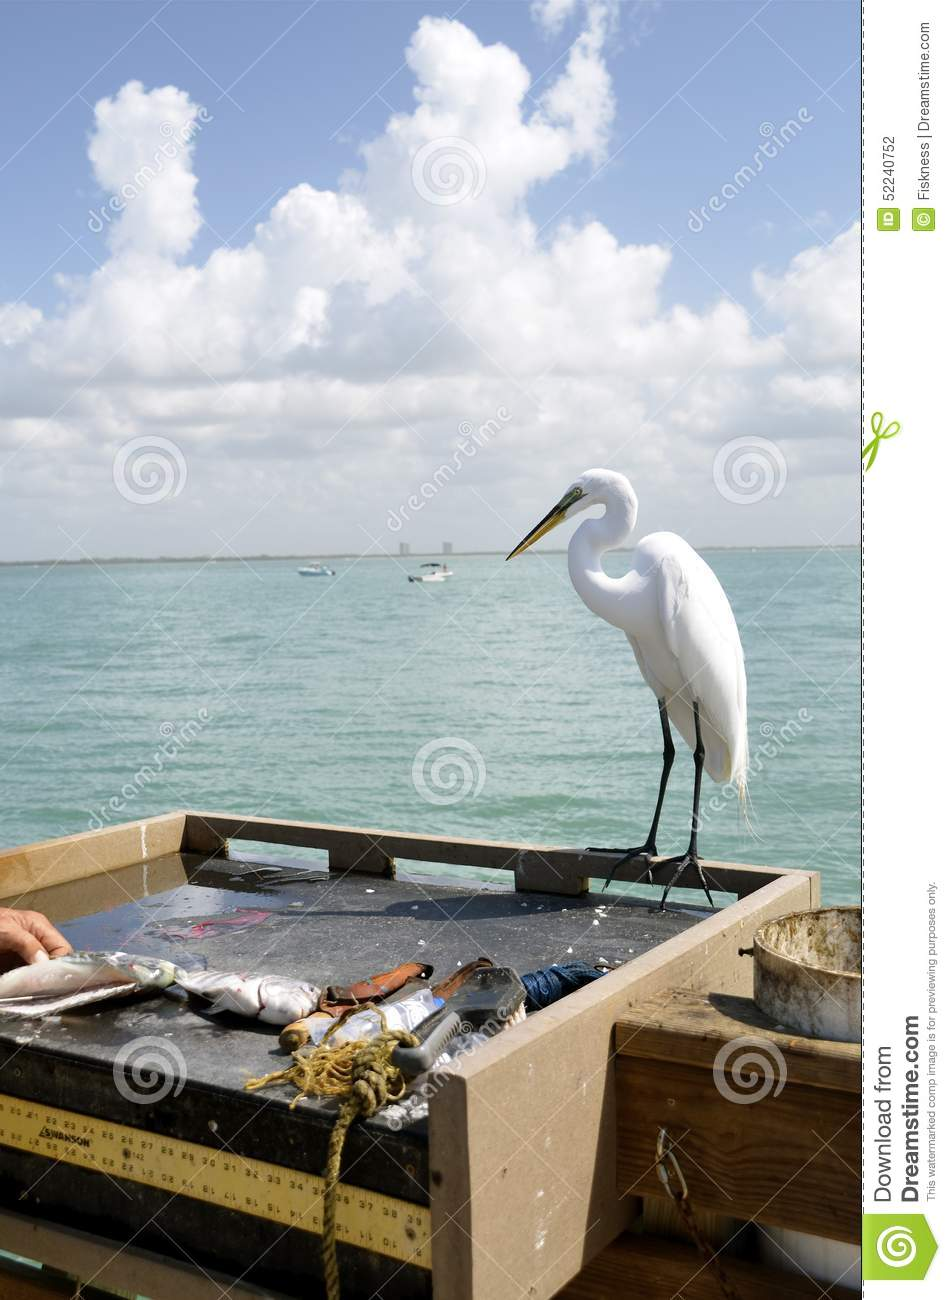 Filleting a fish as egret watches